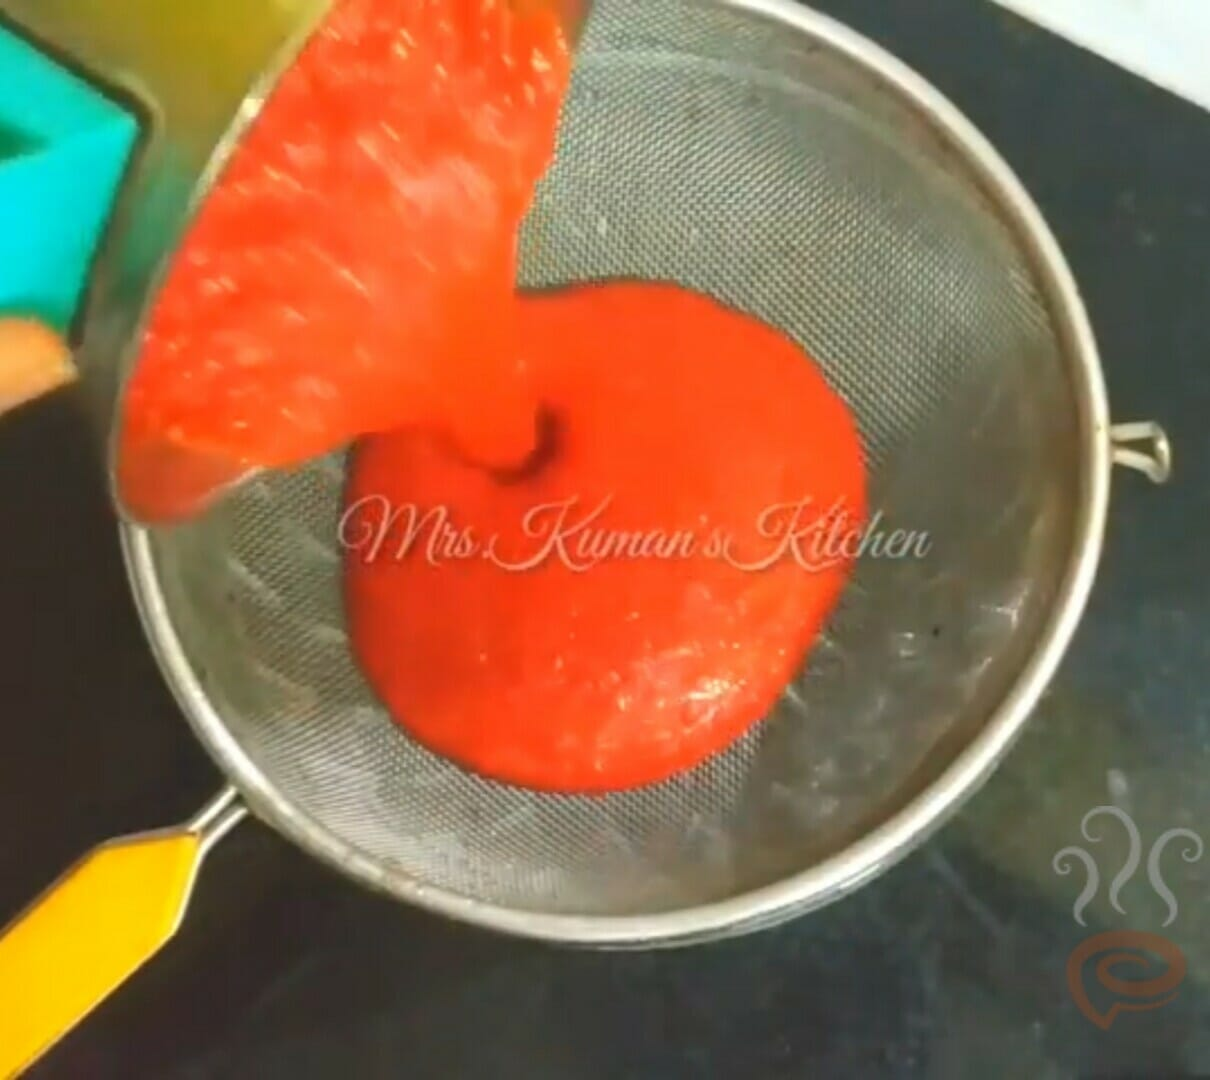 Homemade Tomato Ketchup With Video – pachakam.com